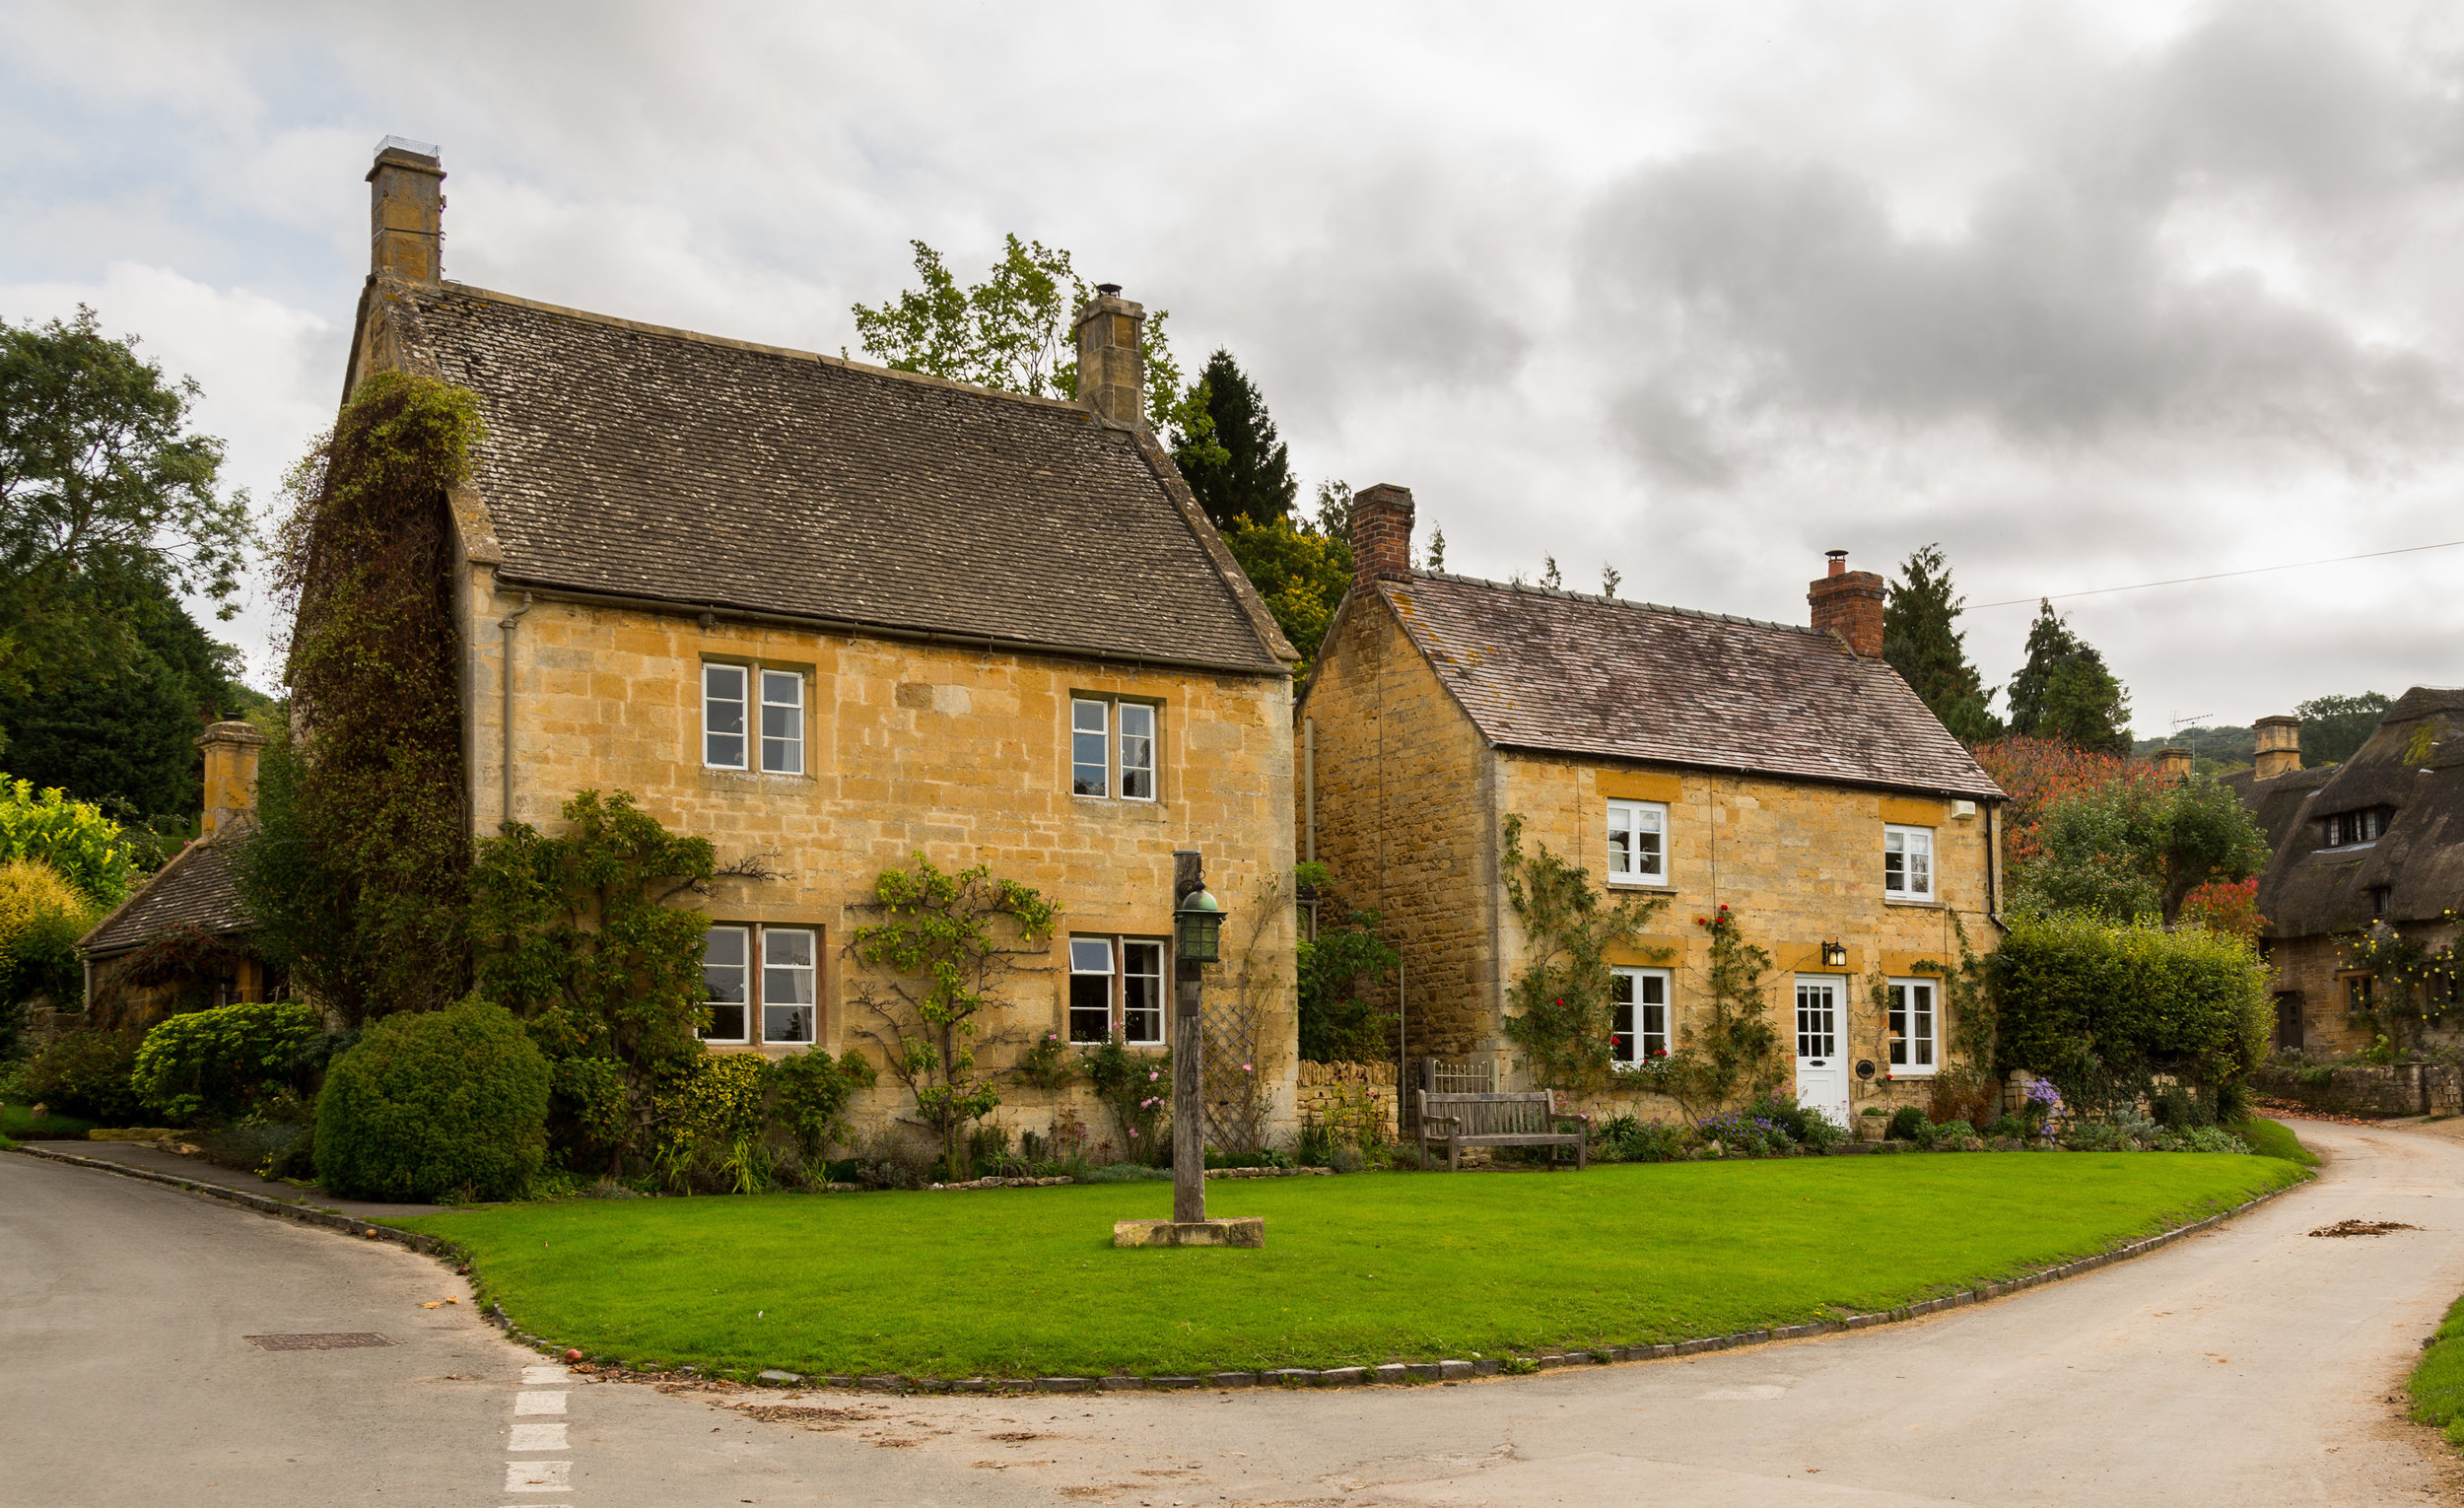 Beautiful sandstone village country cottages on road